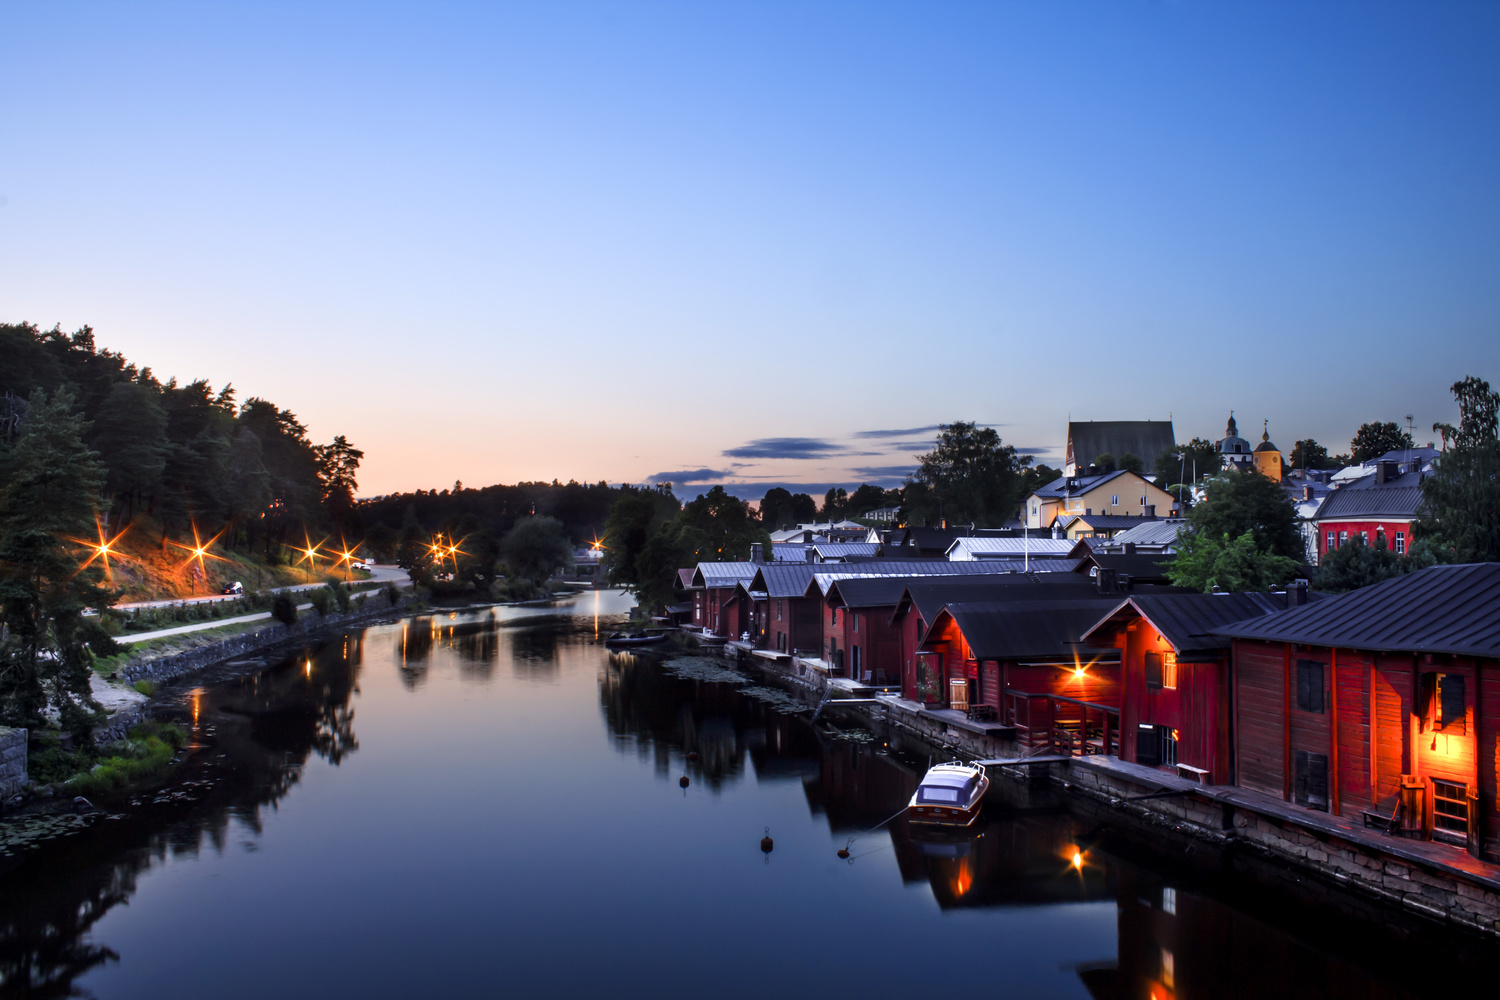 Old Town Porvoo 2 by Natasha Weedman